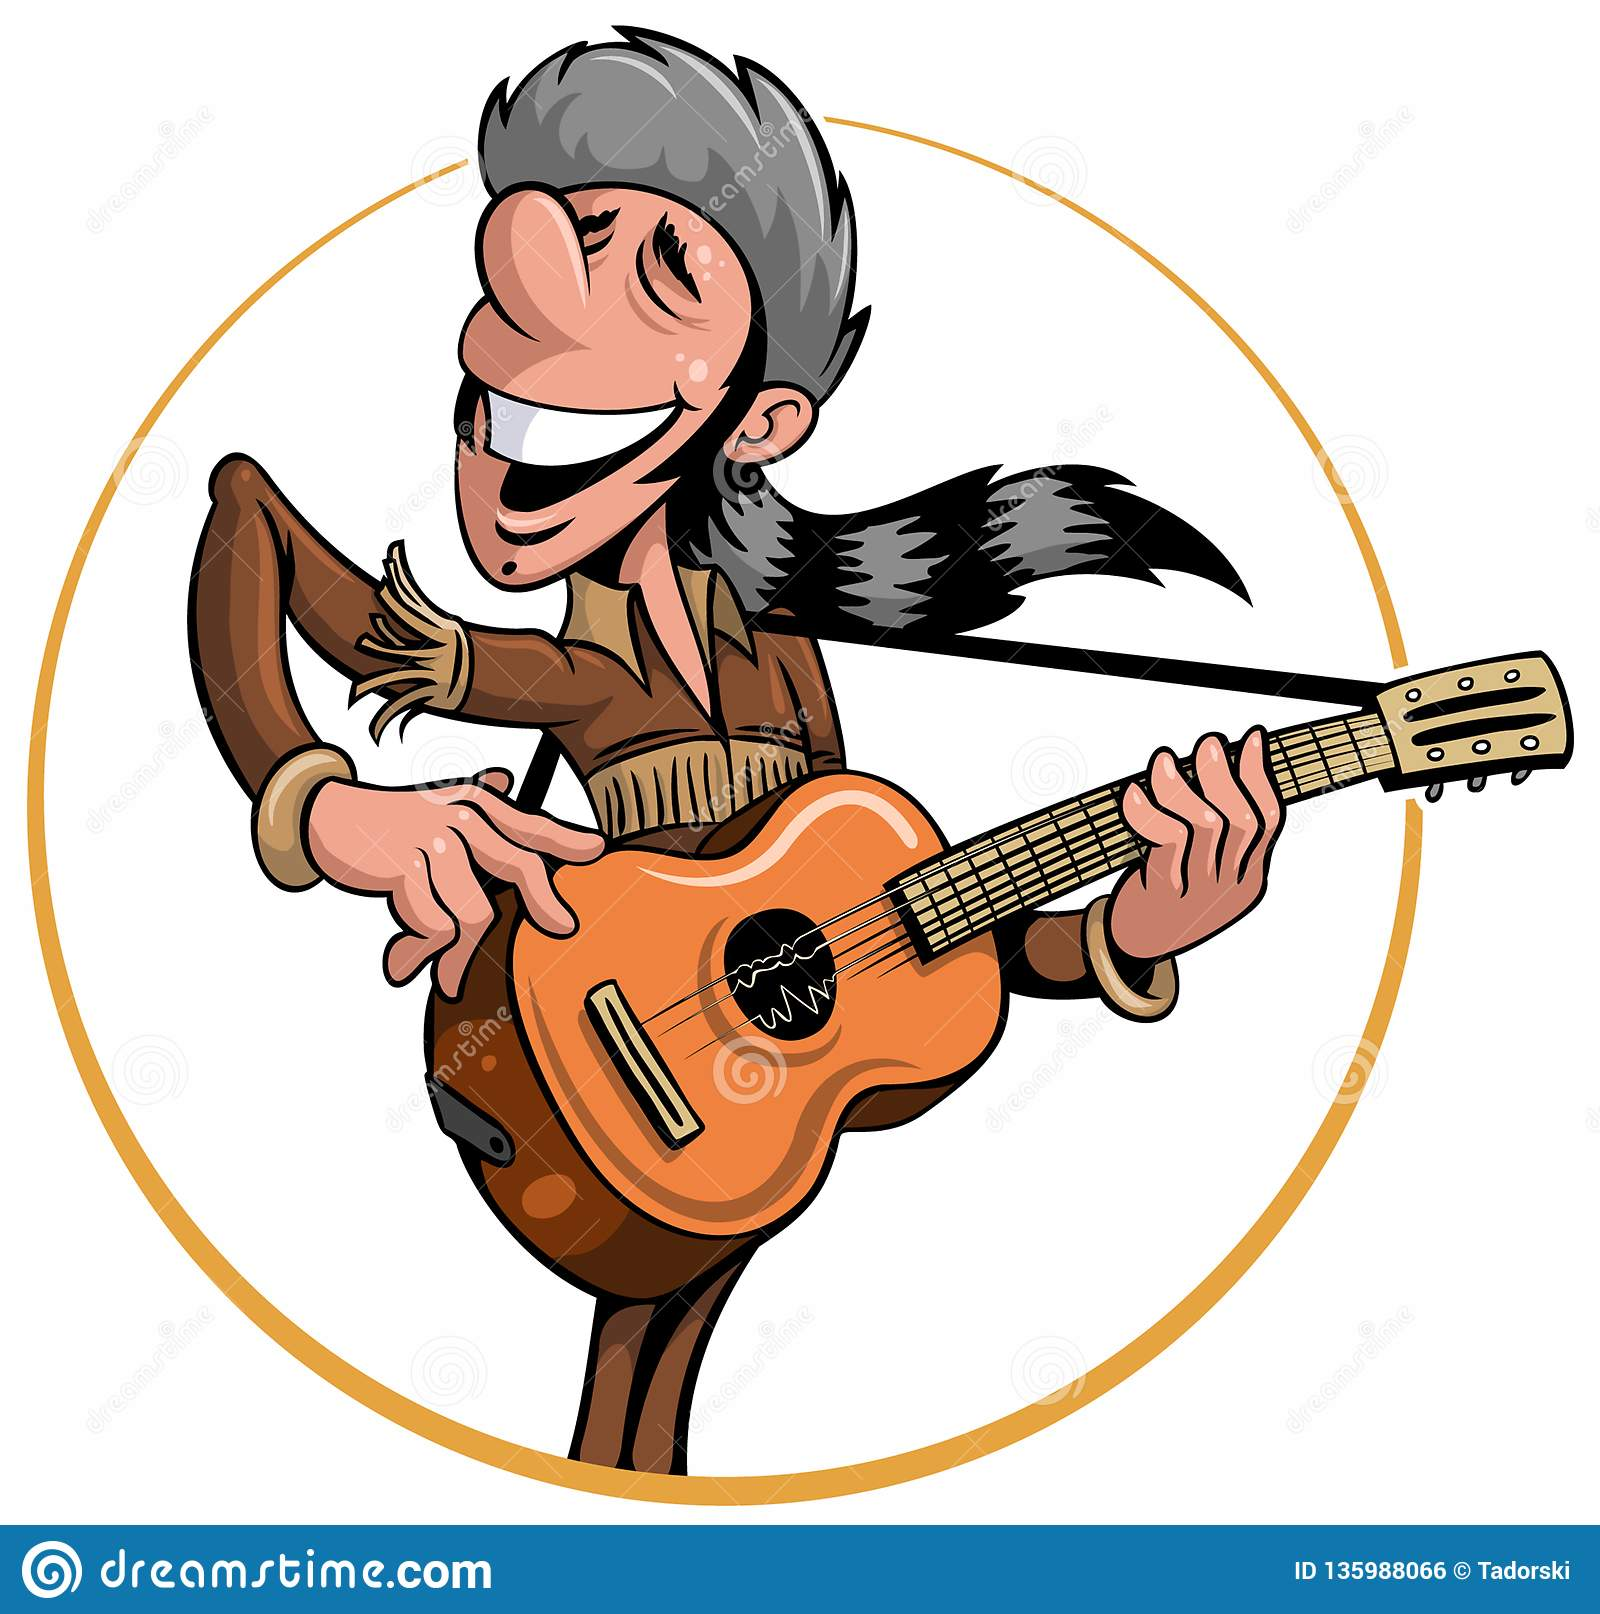 a843eb851e1 Cartoon Style Man In The Buckskin Clothes With A Coonskin Cap ...